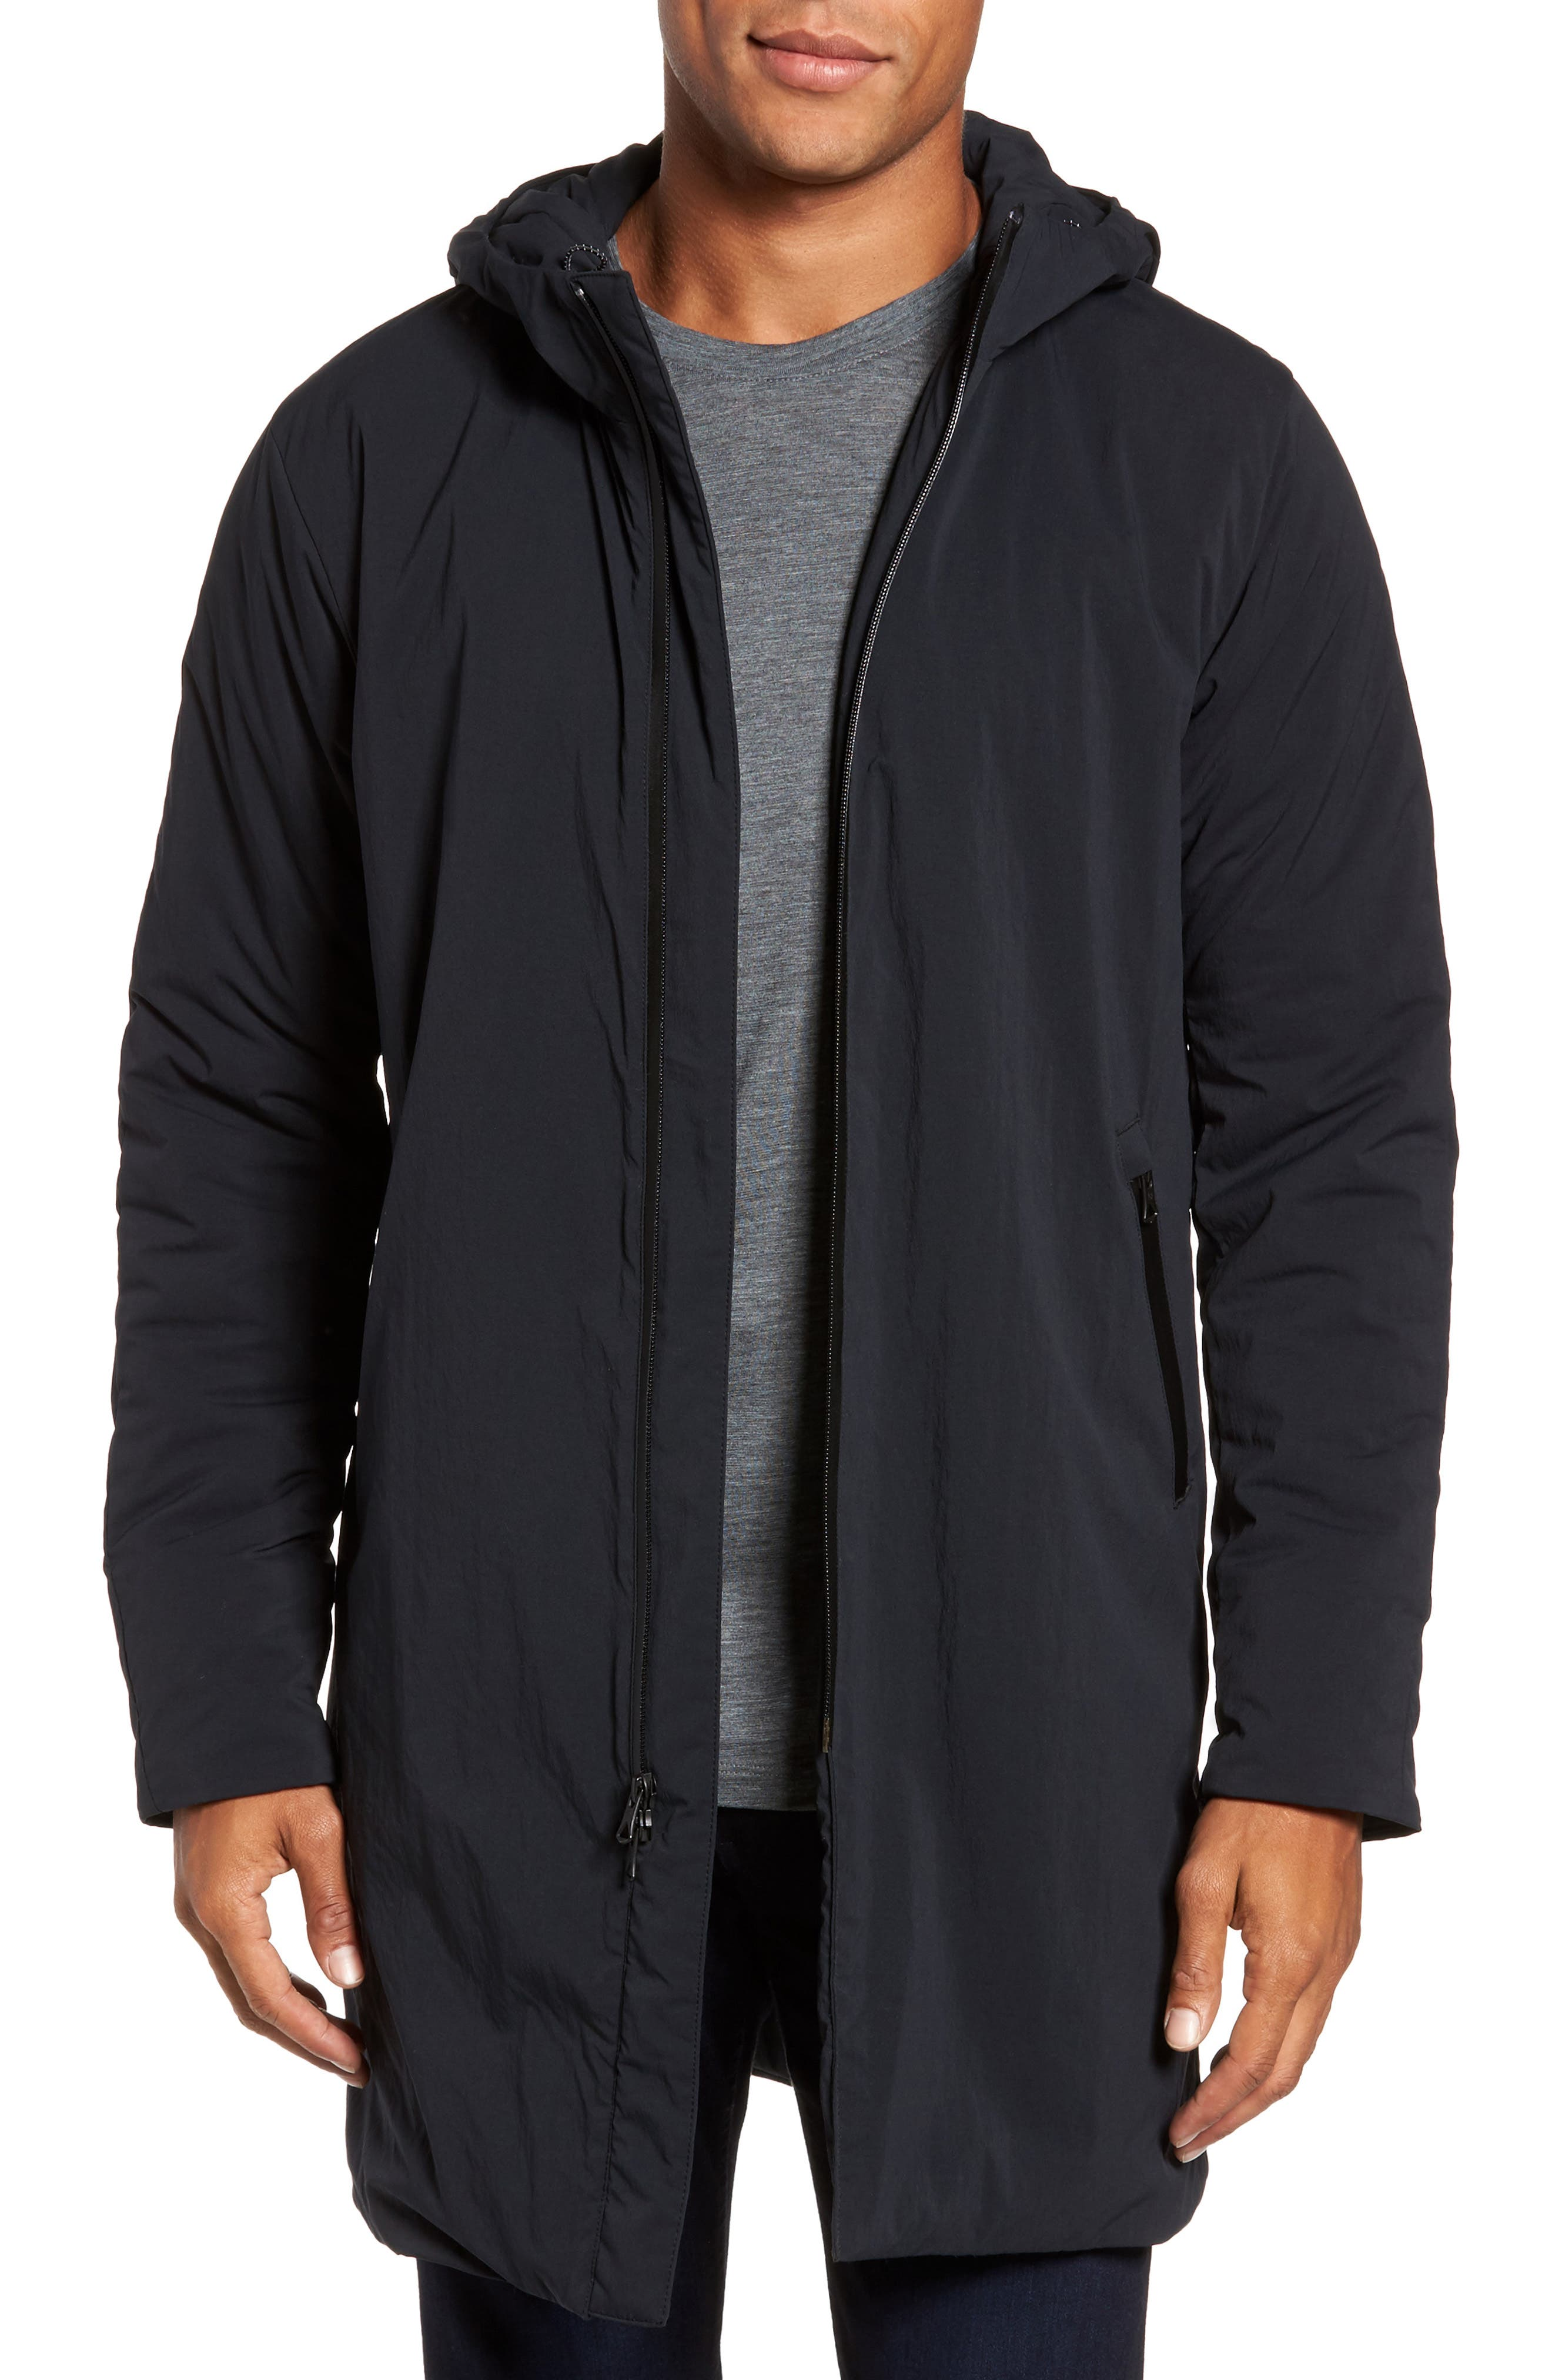 Insulated Trim Sideline Jacket,                         Main,                         color,